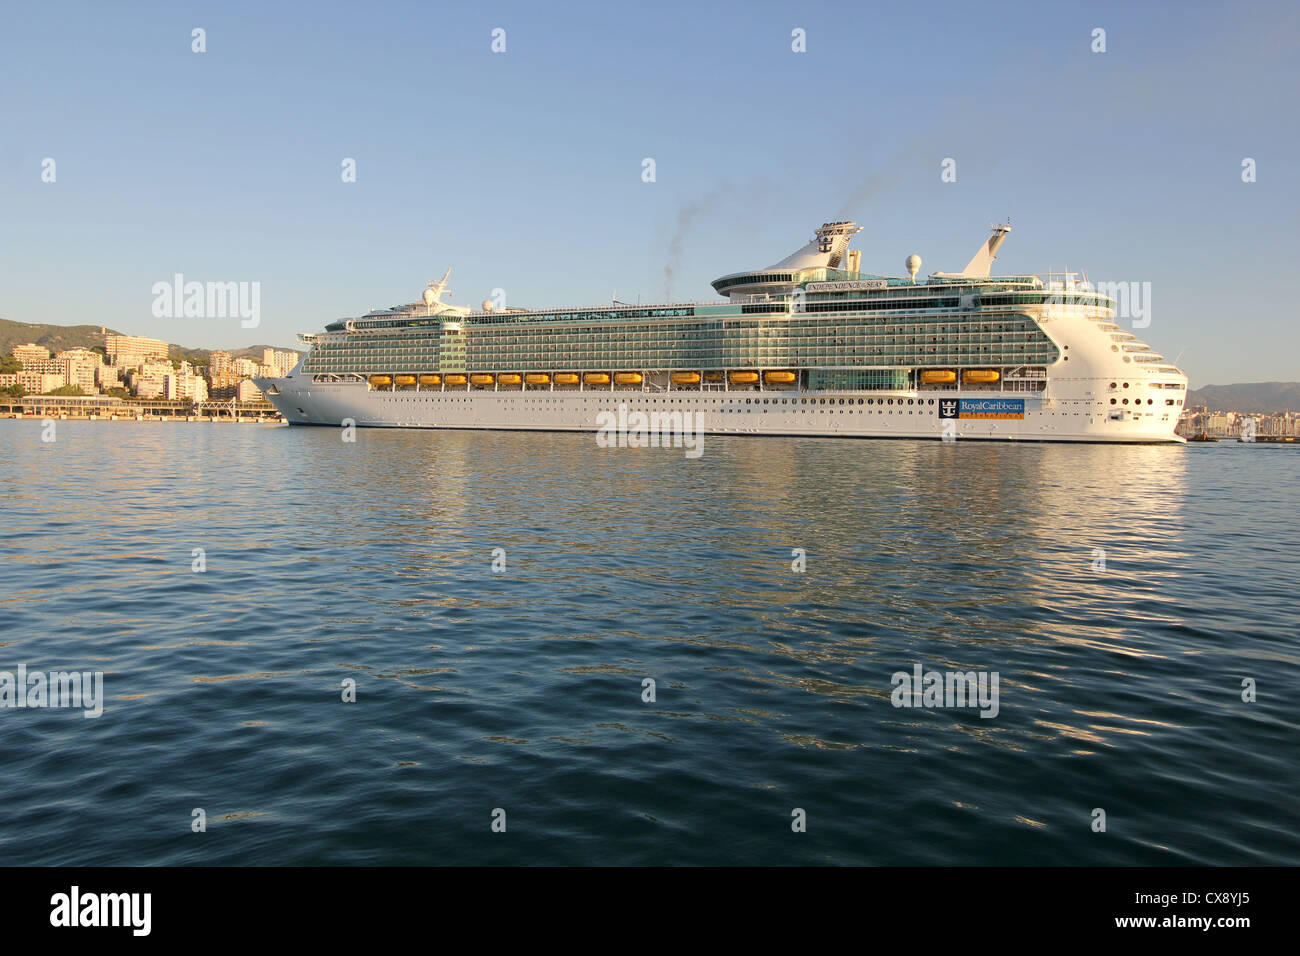 Royal Caribbean International Cruise Line 'Independence of the Seas' at early morning entering the Port - Stock Image